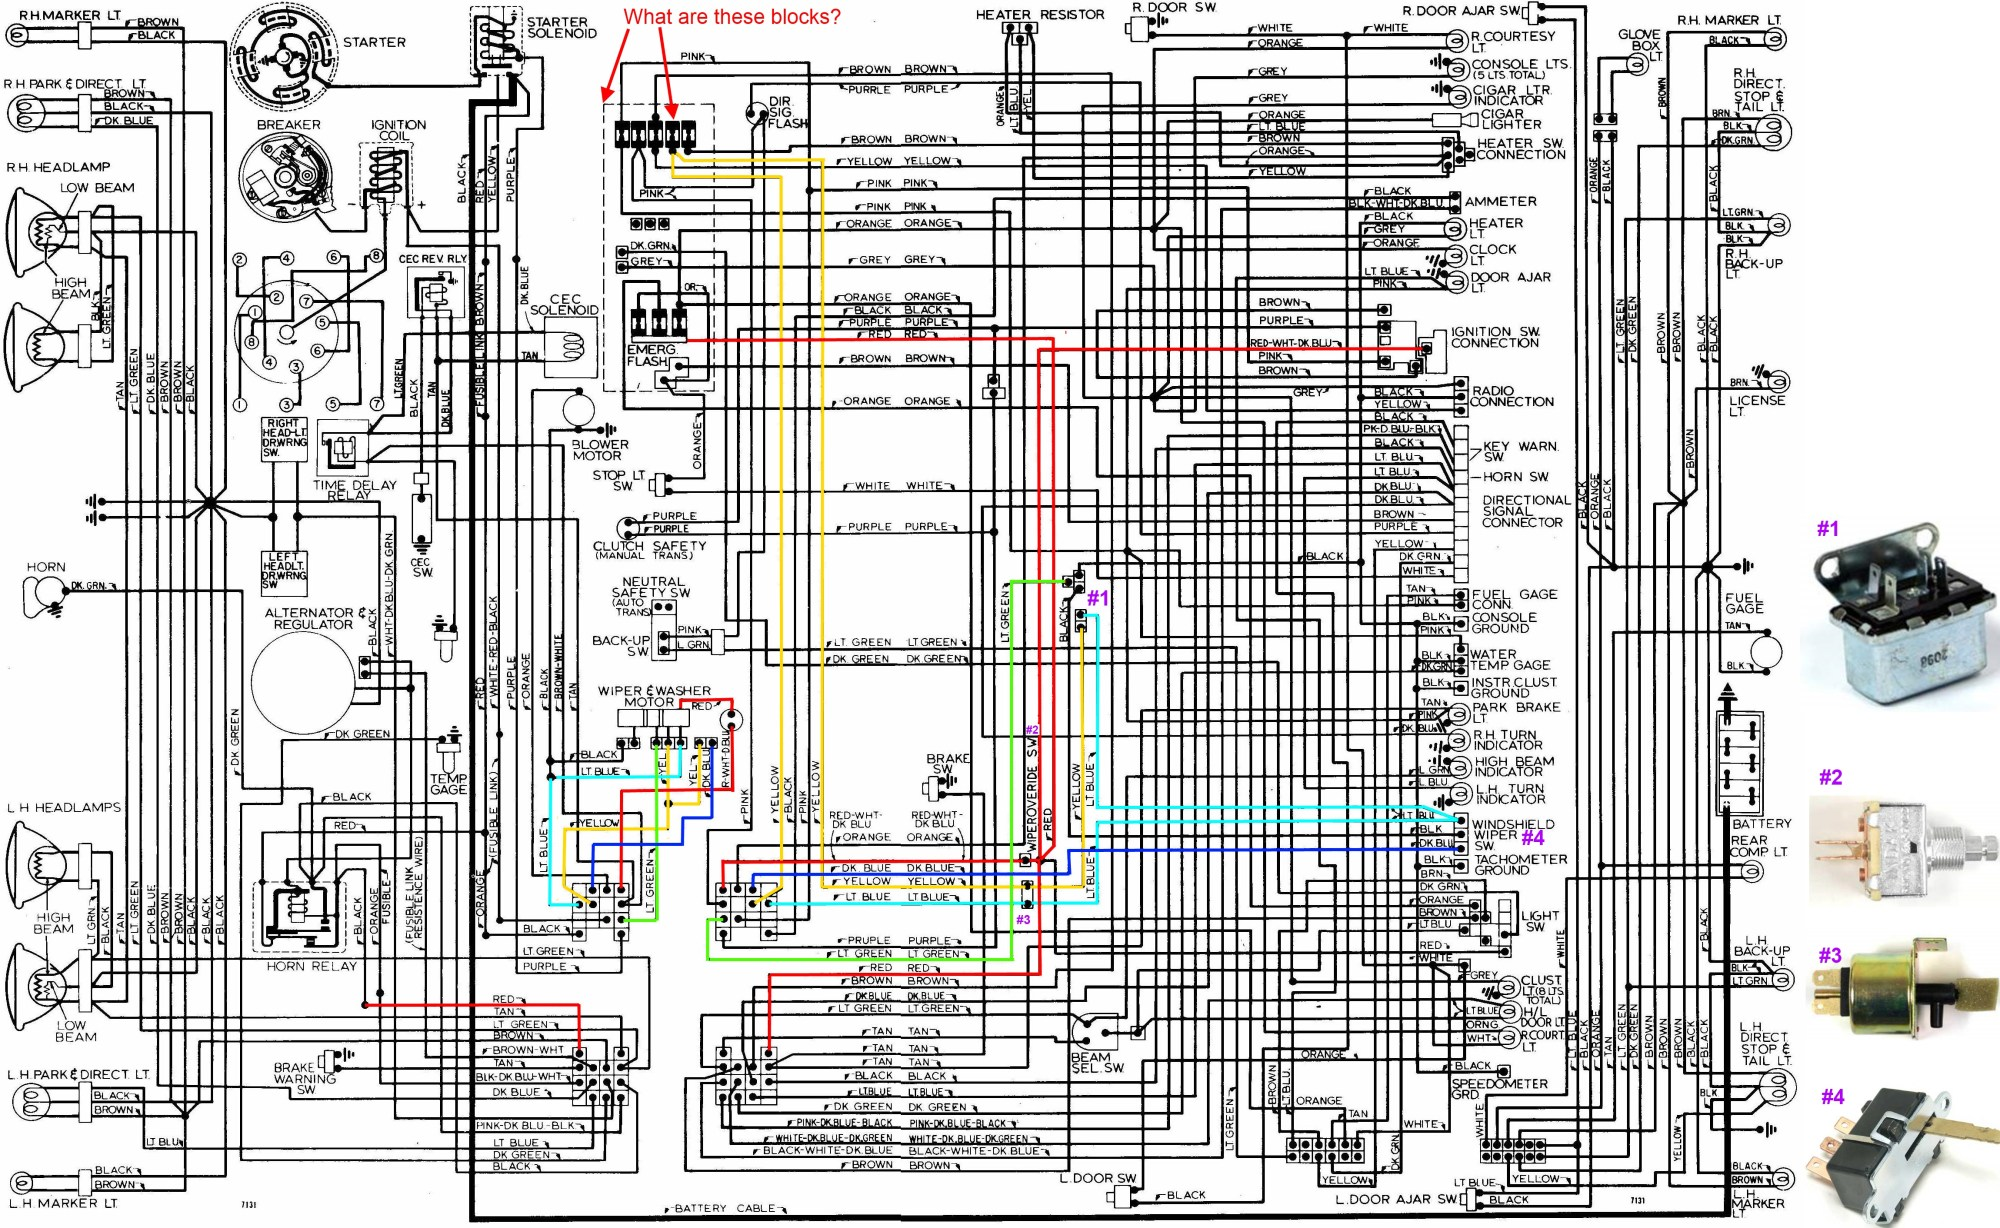 hight resolution of 2005 corvette wiring diagram wiring diagram hub 2006 tahoe wiring diagram 2005 corvette wiring diagram